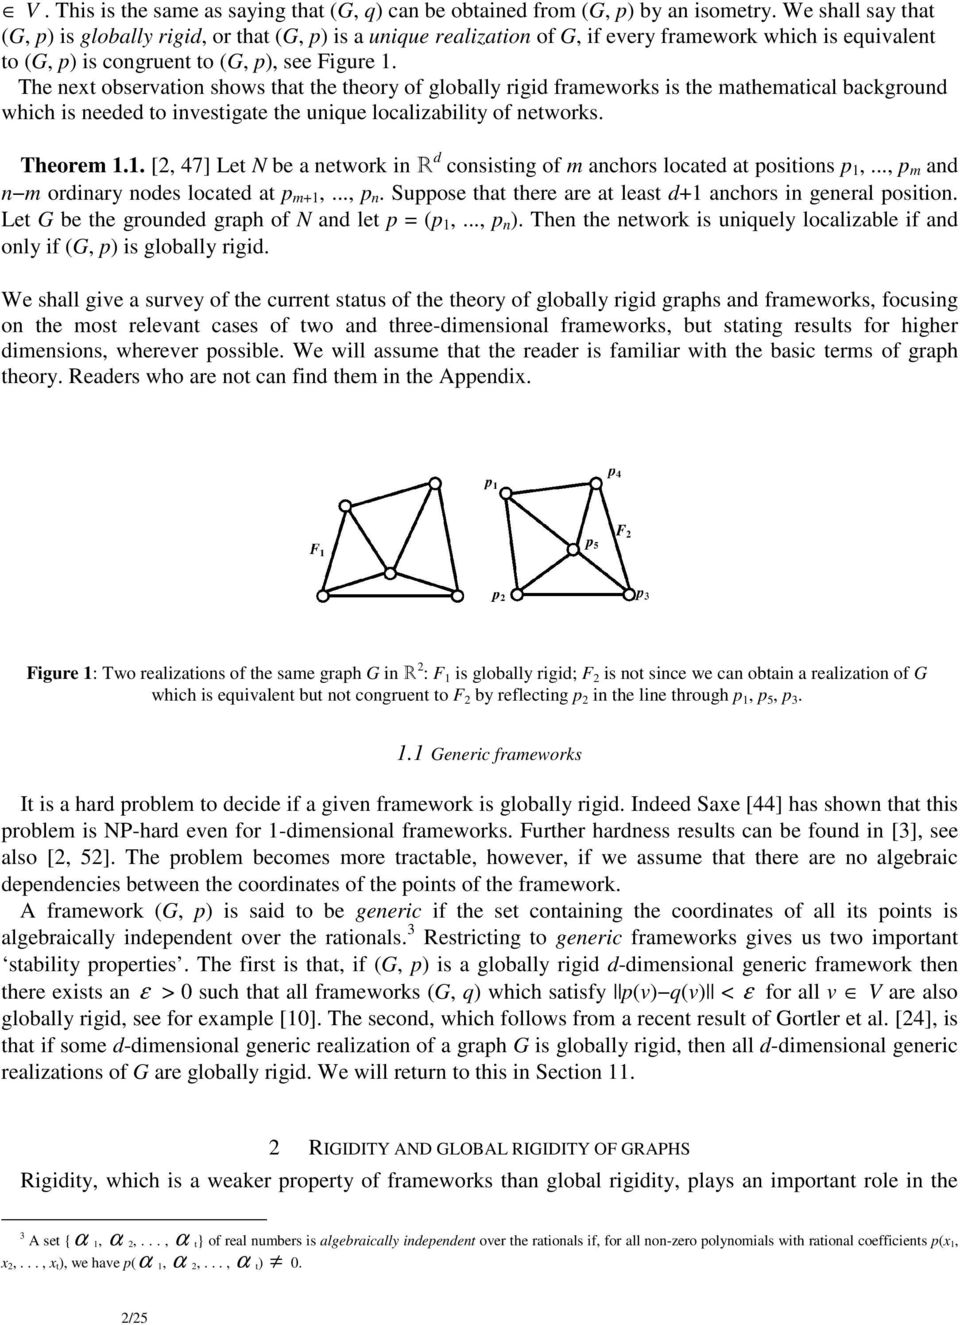 The next observation shows that the theory of globally rigid frameworks is the mathematical background which is needed to investigate the unique localizability of networks. Theorem 1.